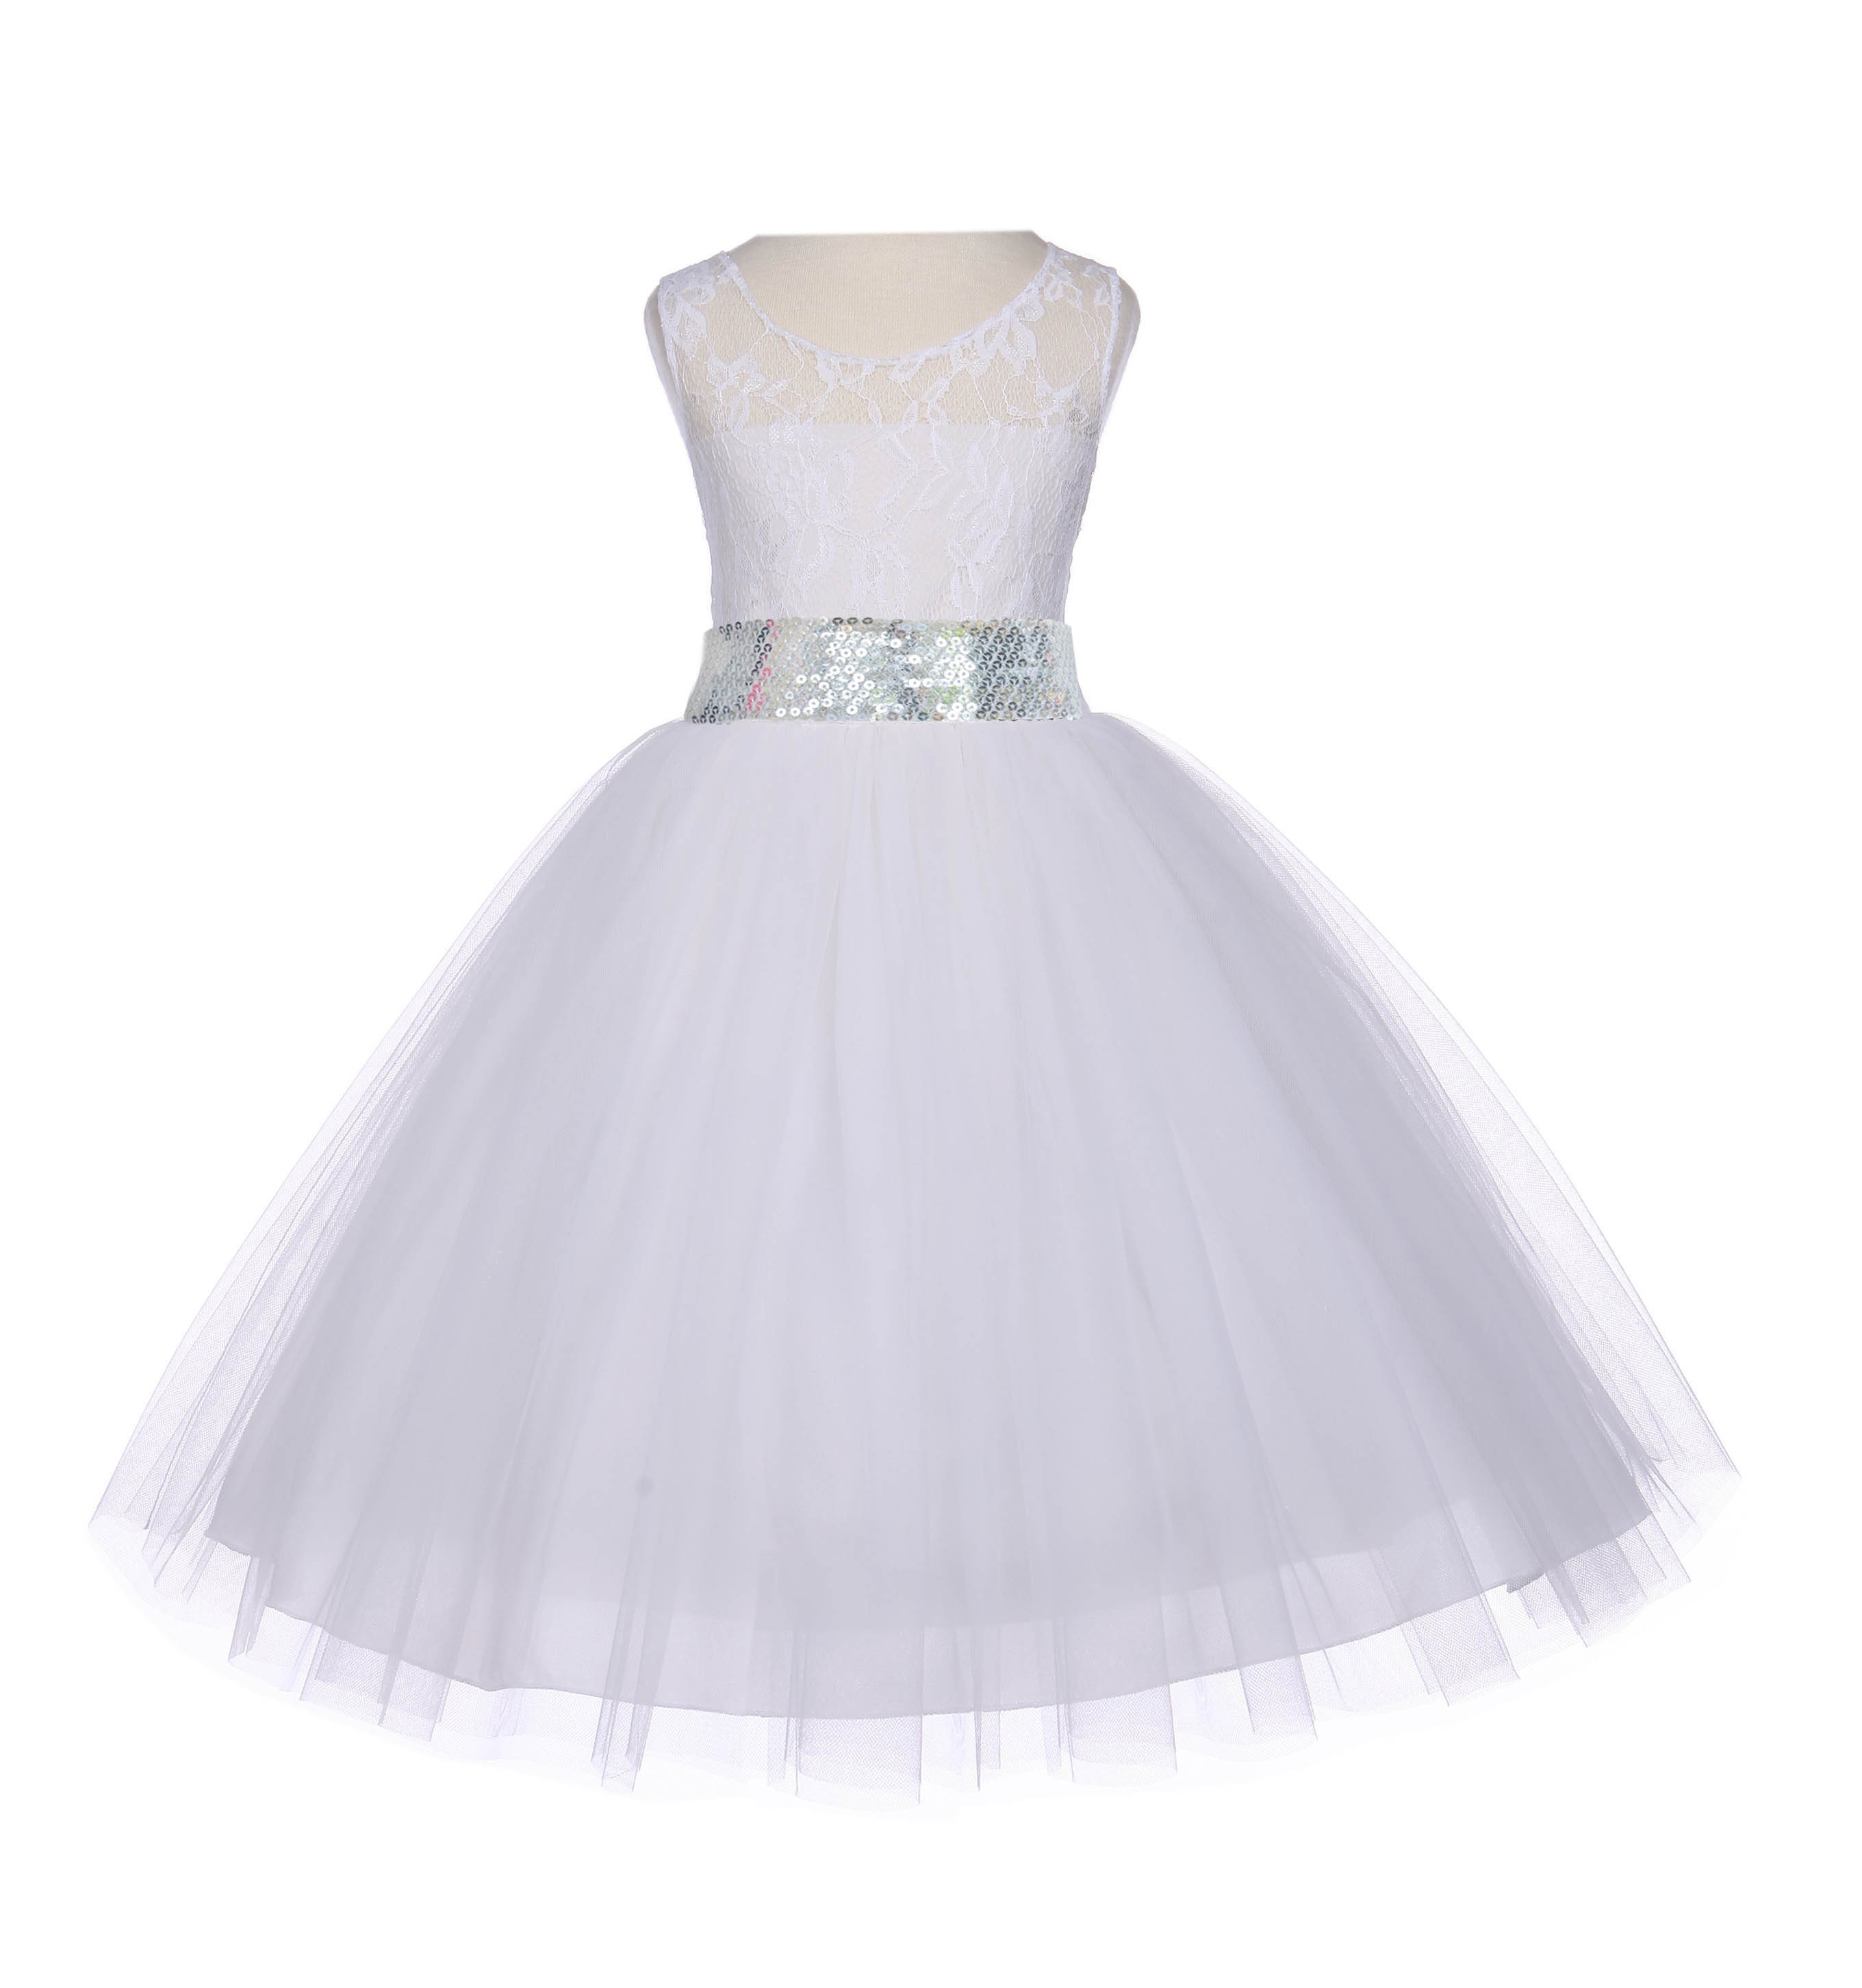 88f07fc38b5 Ivory Floral Lace Bodice Tulle Silver Sequin Flower Girl Dress 153mh ...